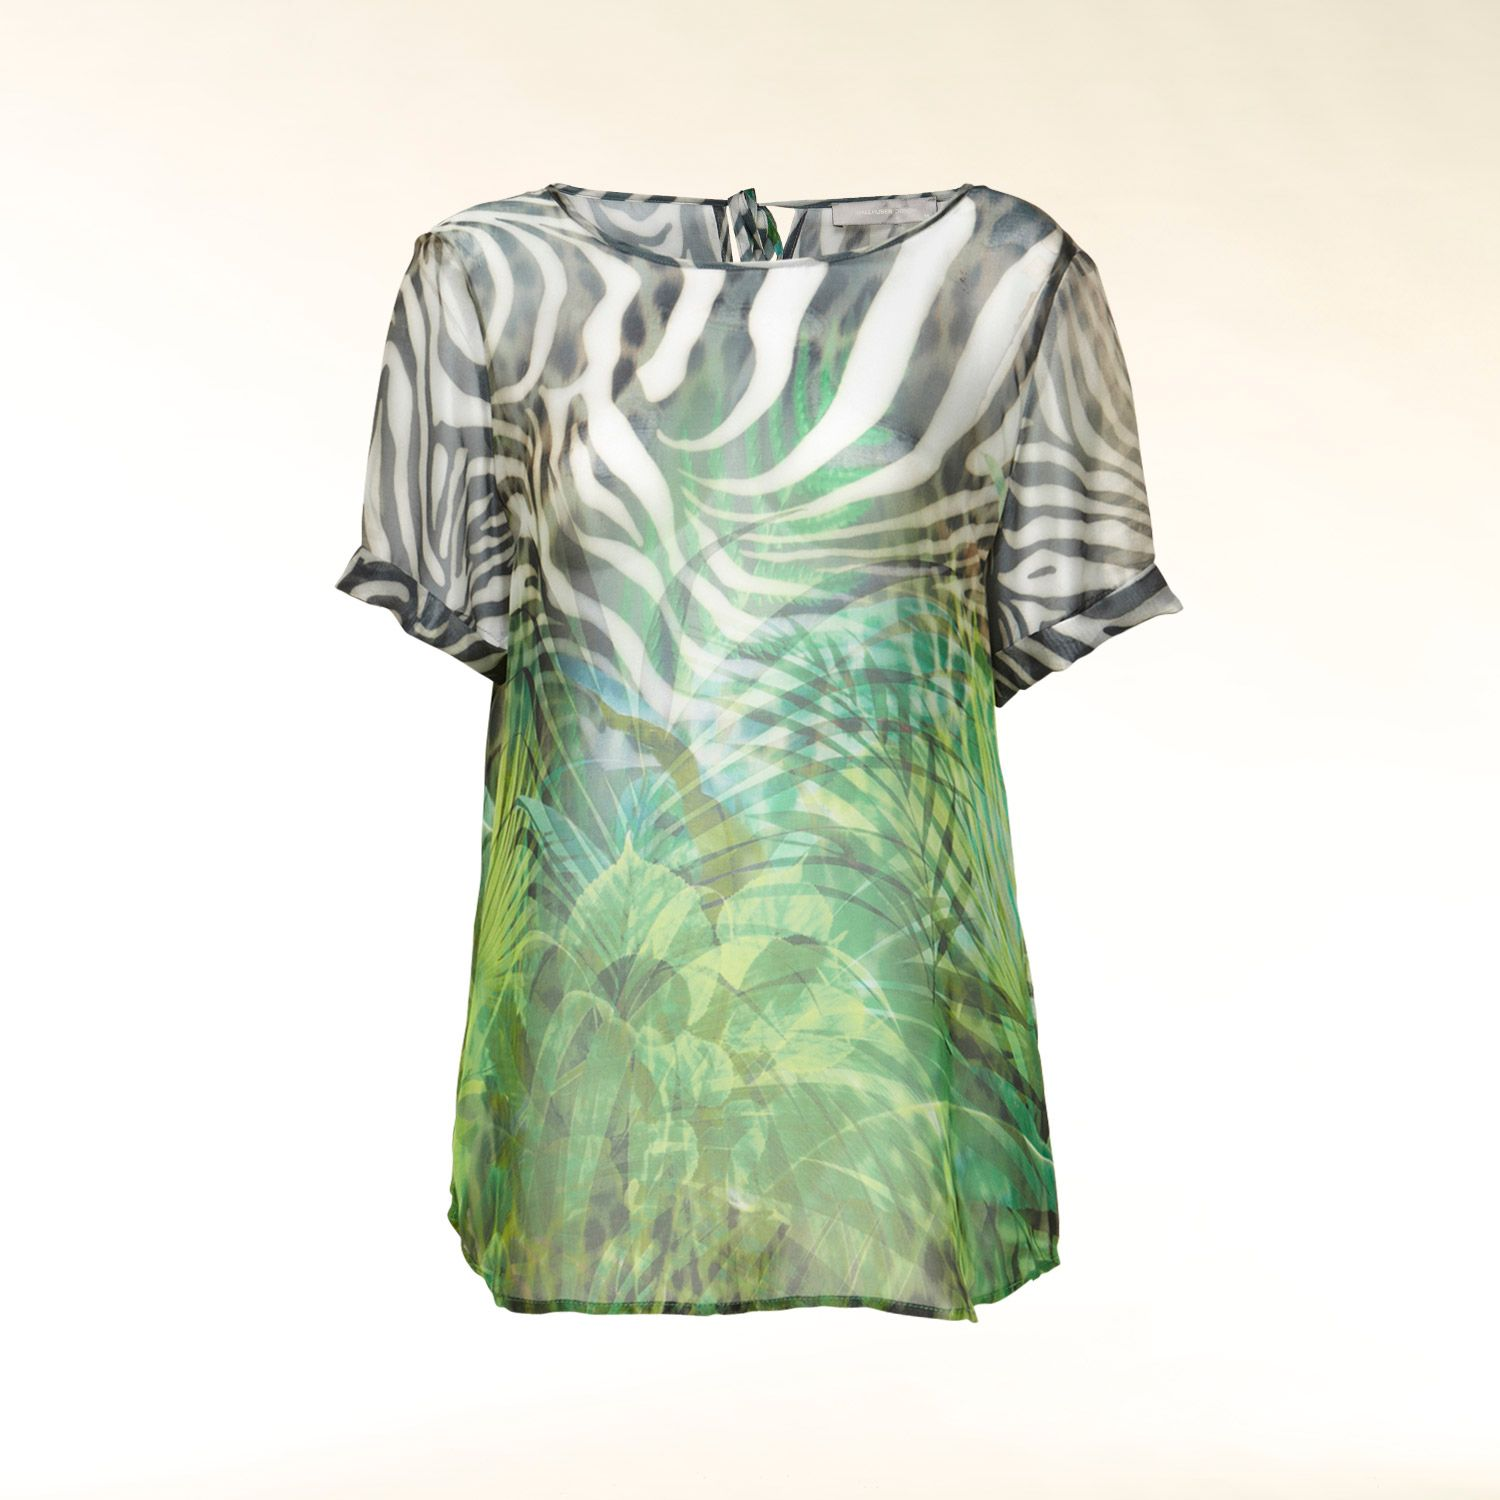 Silk jungle print top